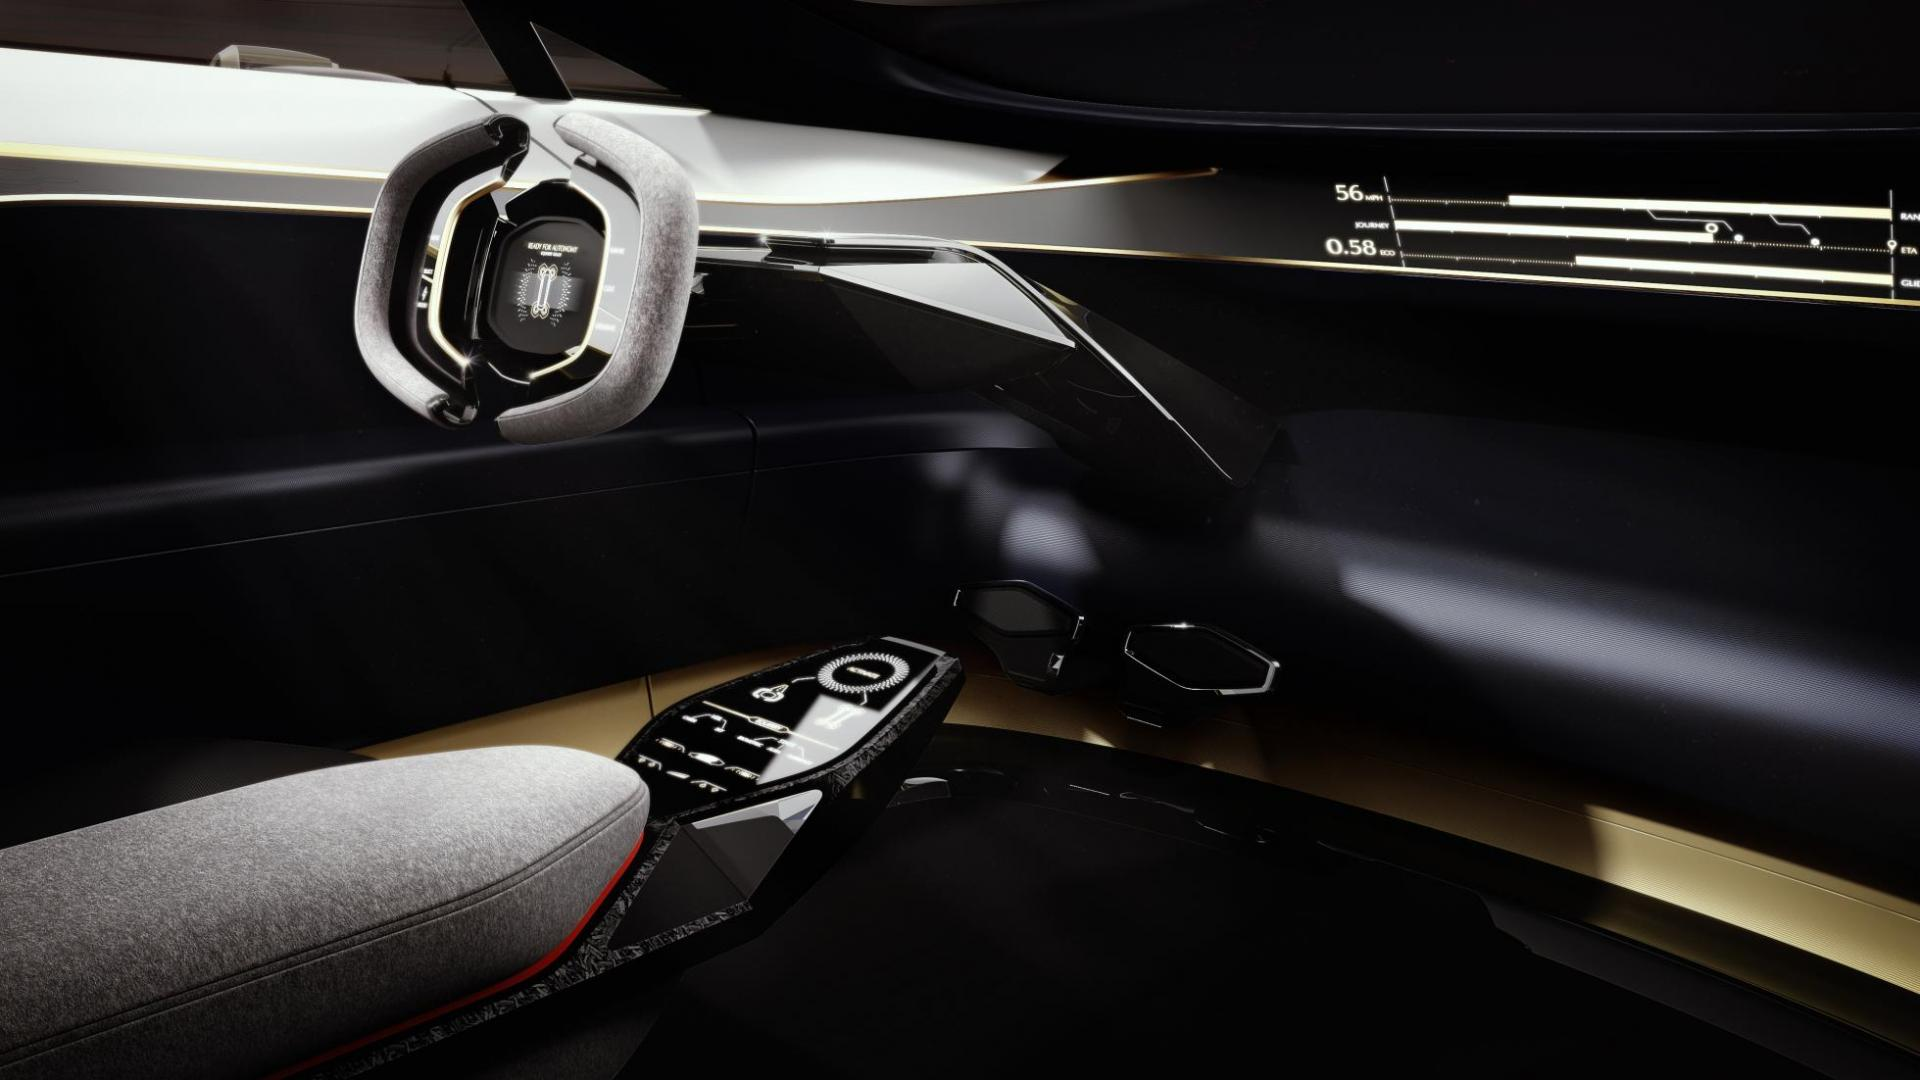 aston martin lagonda vision with Aston Martin Lagonda Vision Concept on Why Did They Never Build These Shooting Brakes furthermore 2019 Aston Martin Db11 Amr also 16 as well Bmw M8 Concept M8 Gran Coupe Debuts Geneva also Aston Martin Dp 100 Vision Gran Turismo Supercar Gt6.